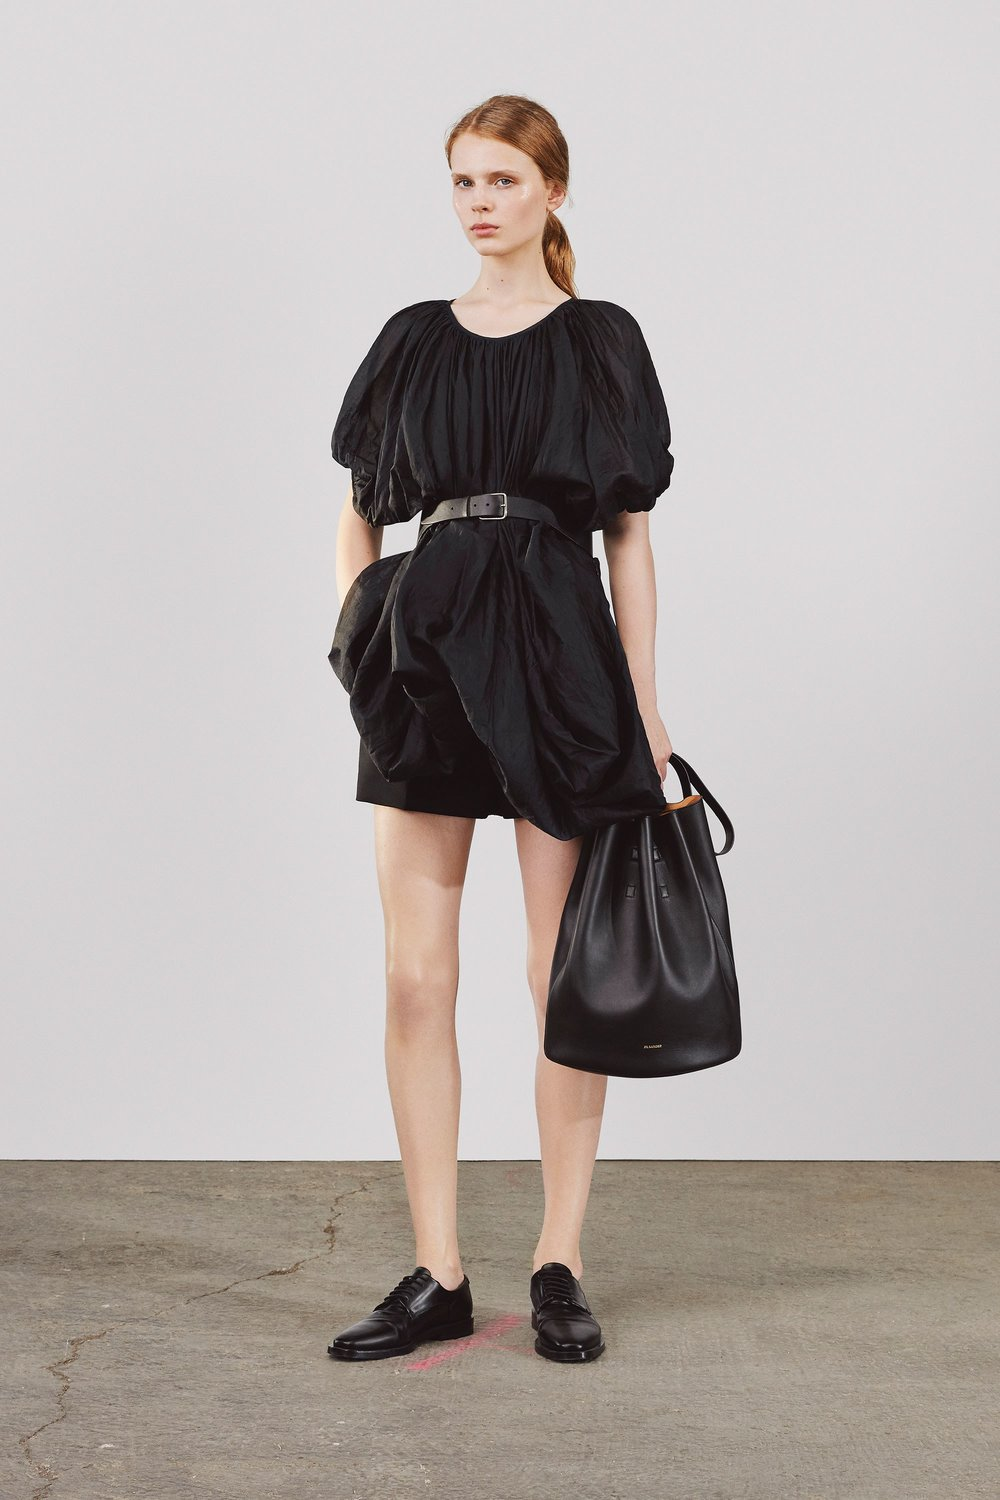 22-Jil-Sander-Resort-18.jpg